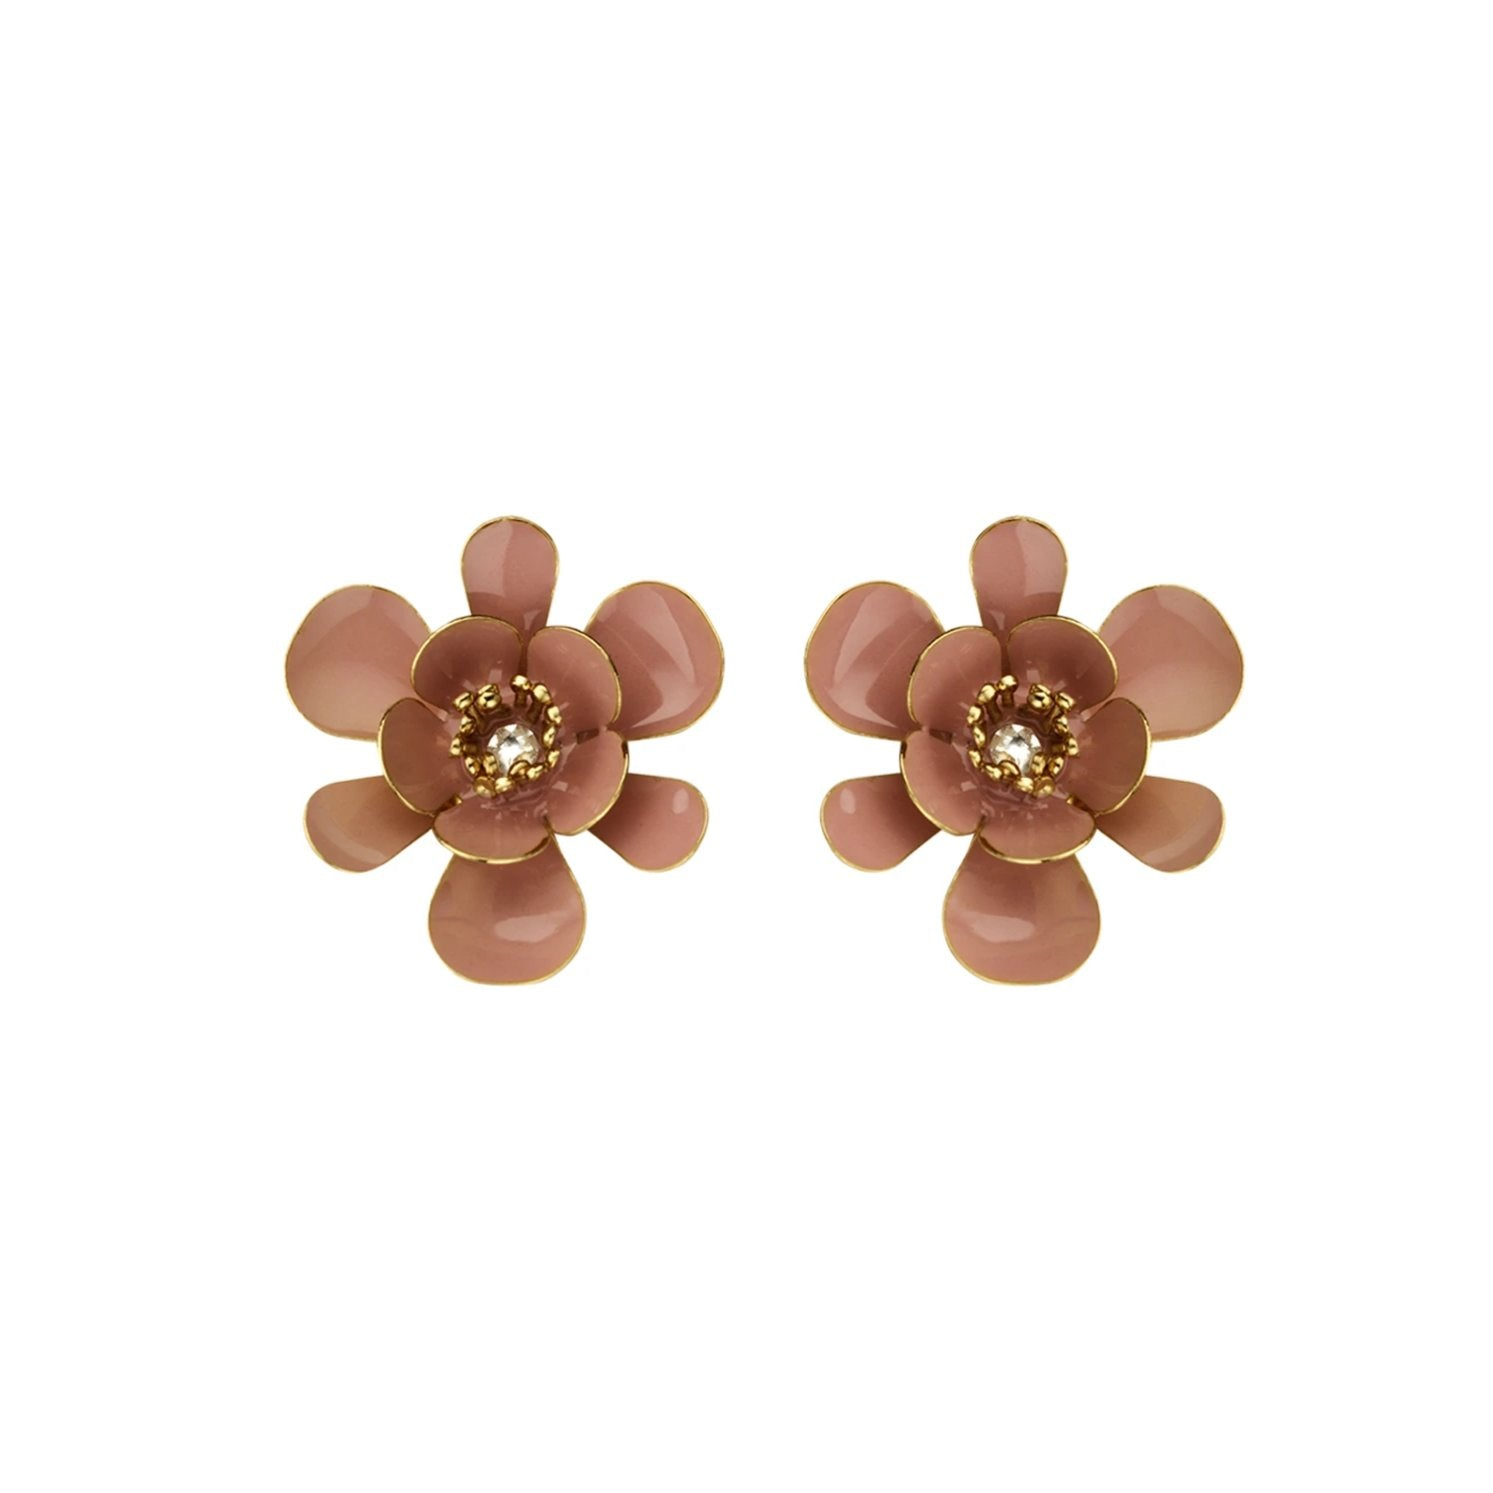 Gina shortie large old rose nude earrings - Souvenirs de Pomme